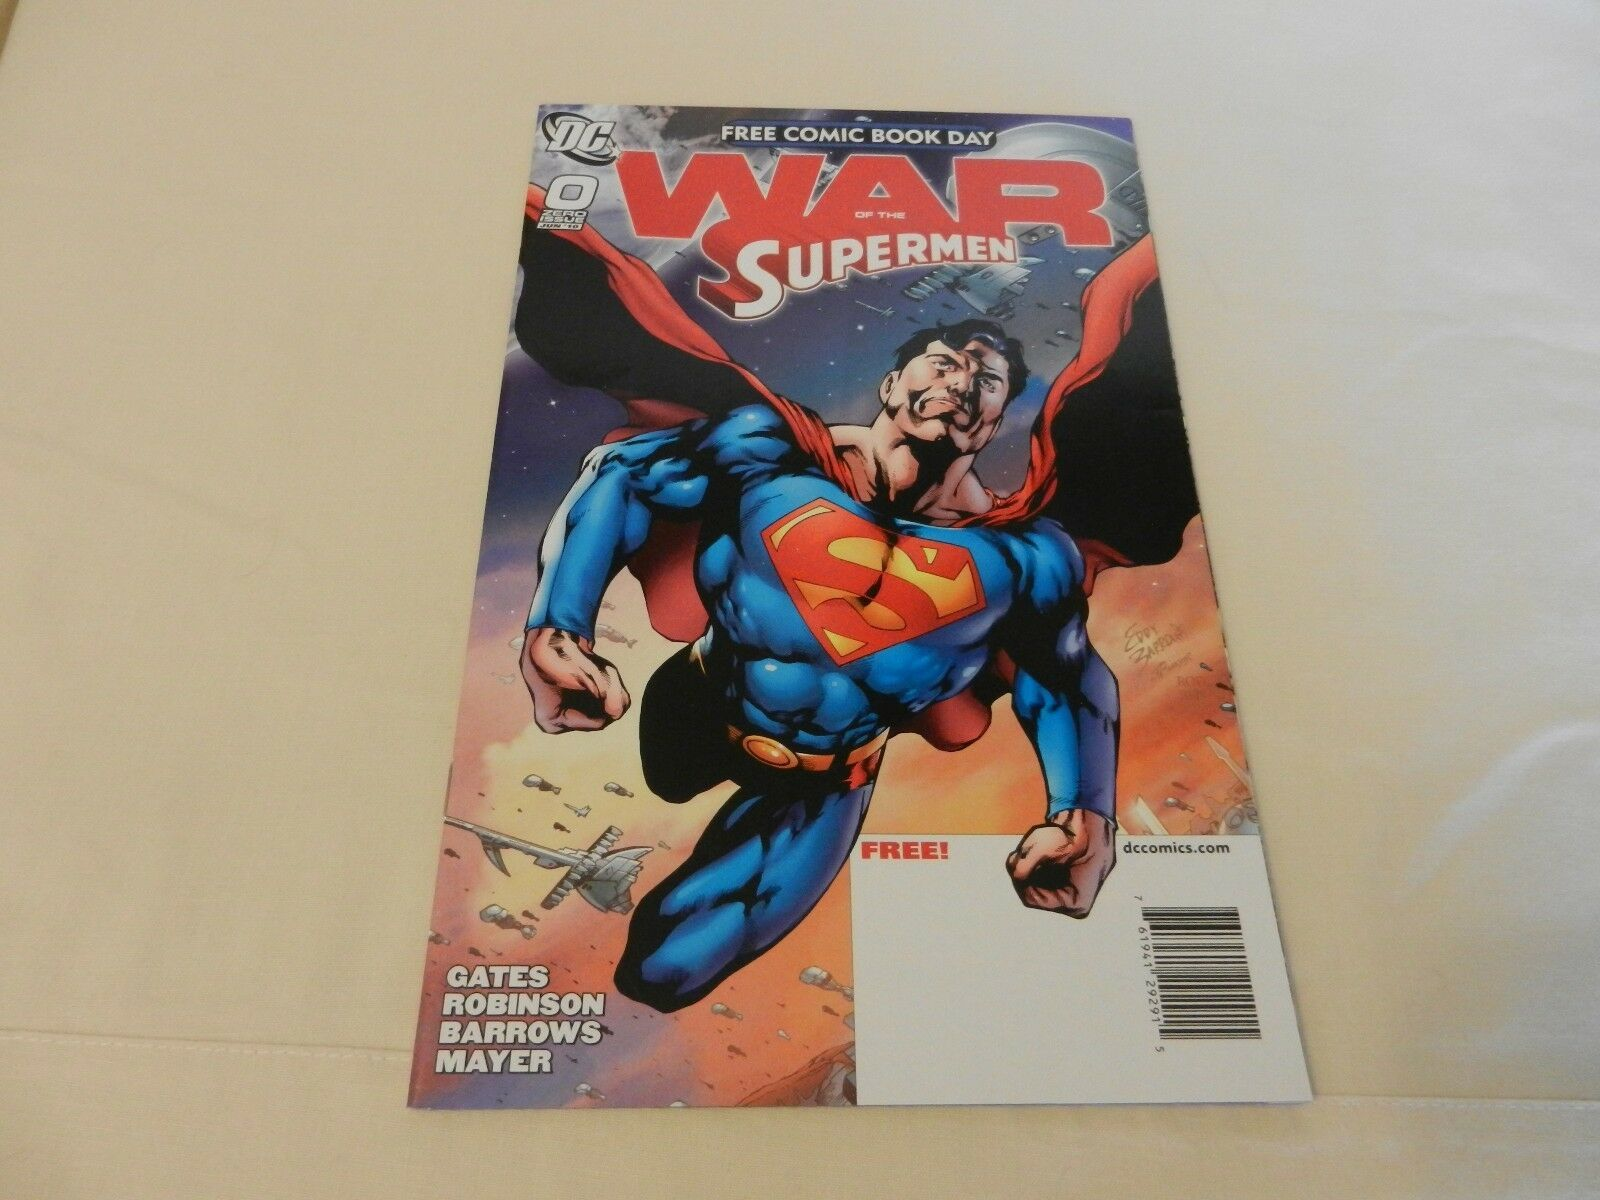 War of The Supermen DC Comics #0 June 2010 Free Comic Book Day Issue